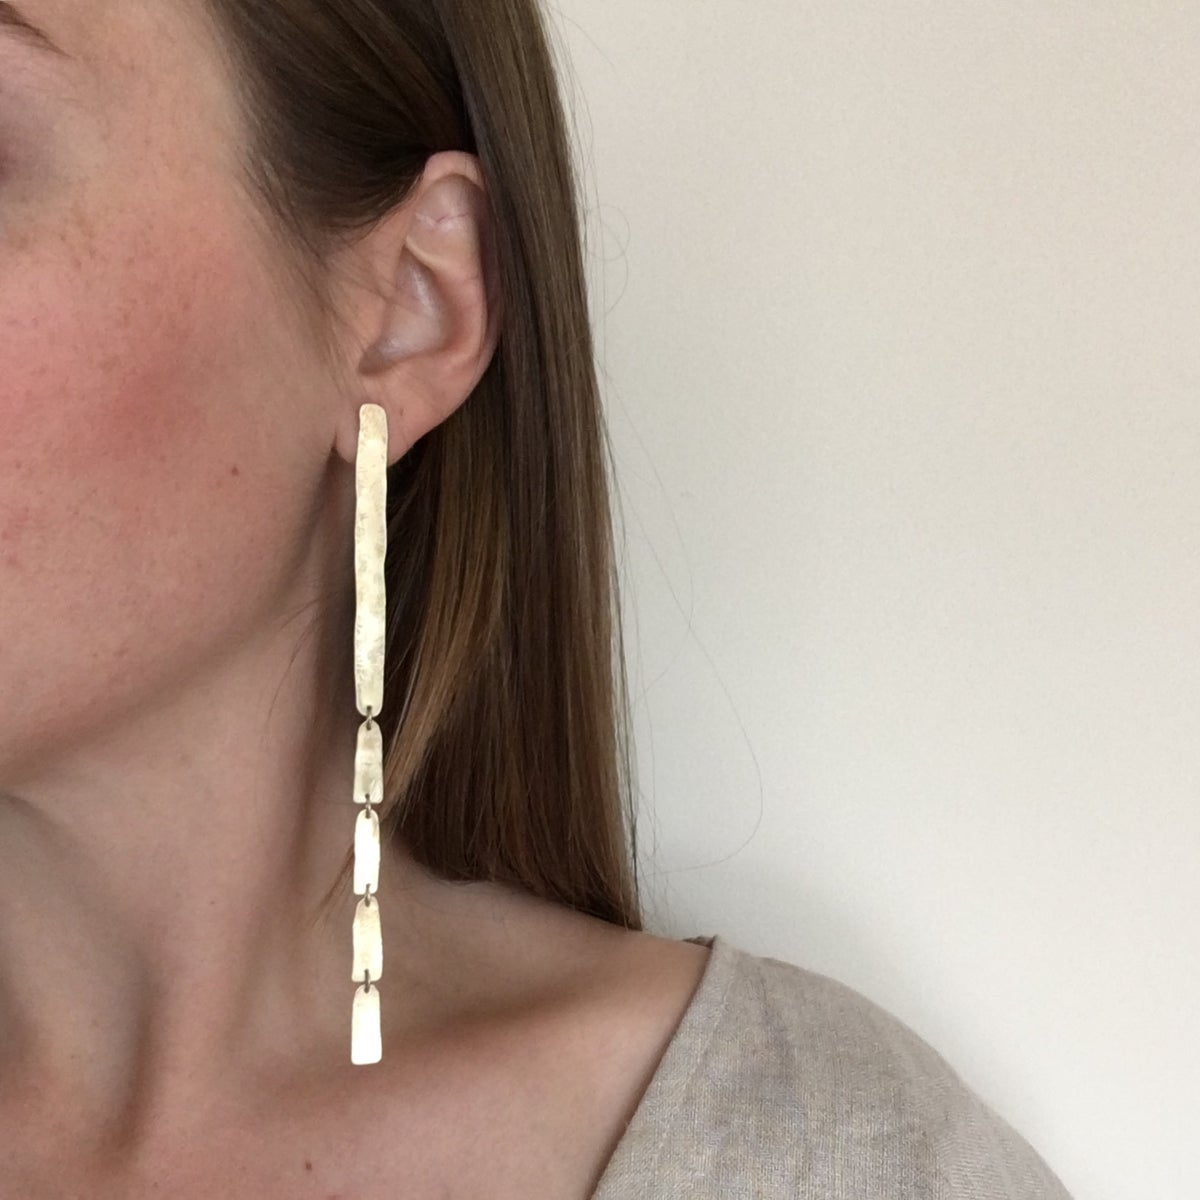 Image of summer solstice earring